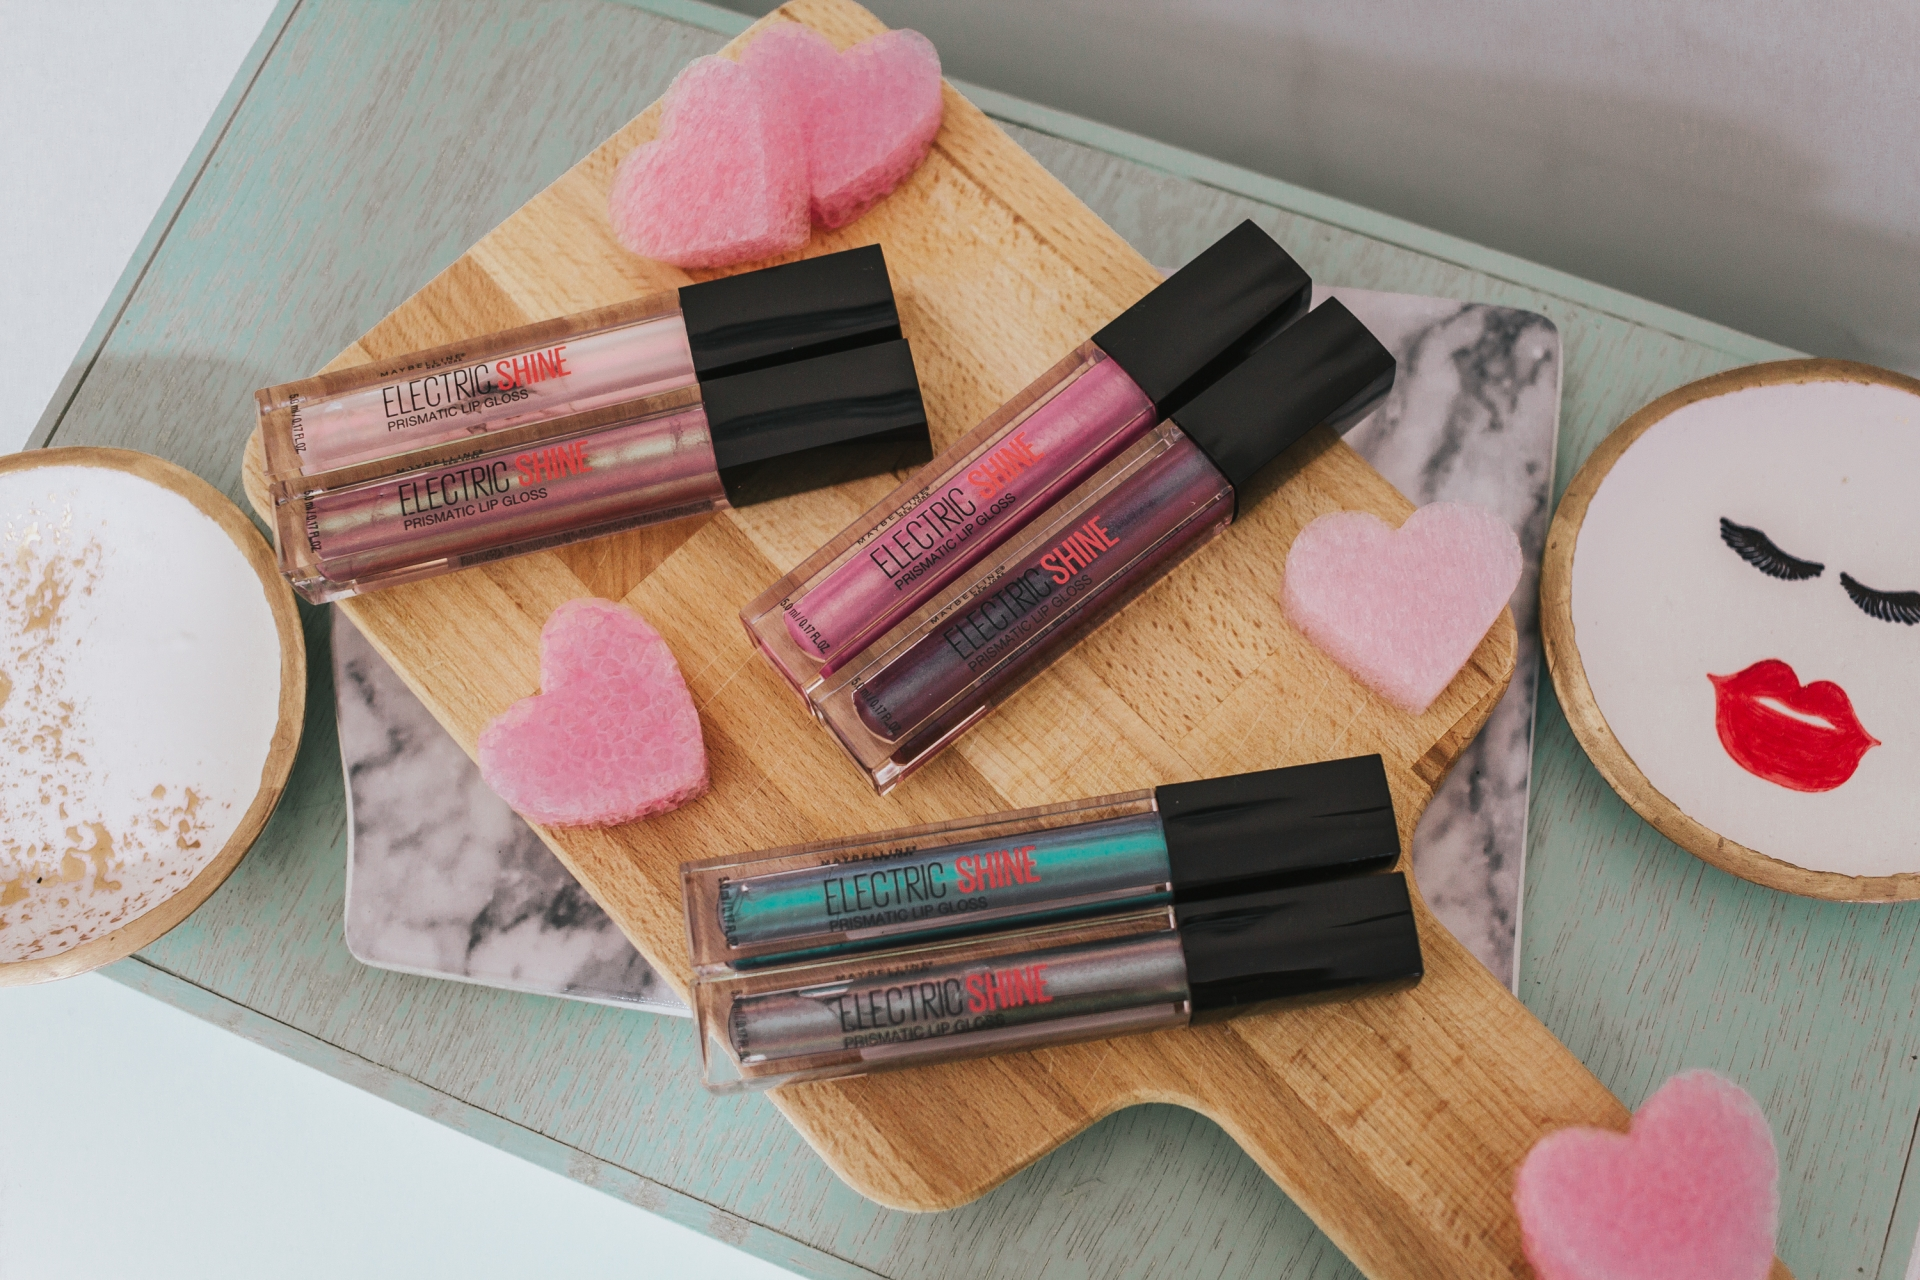 Maybelline Lip Studio Electric Shine Prismatic Lip Gloss